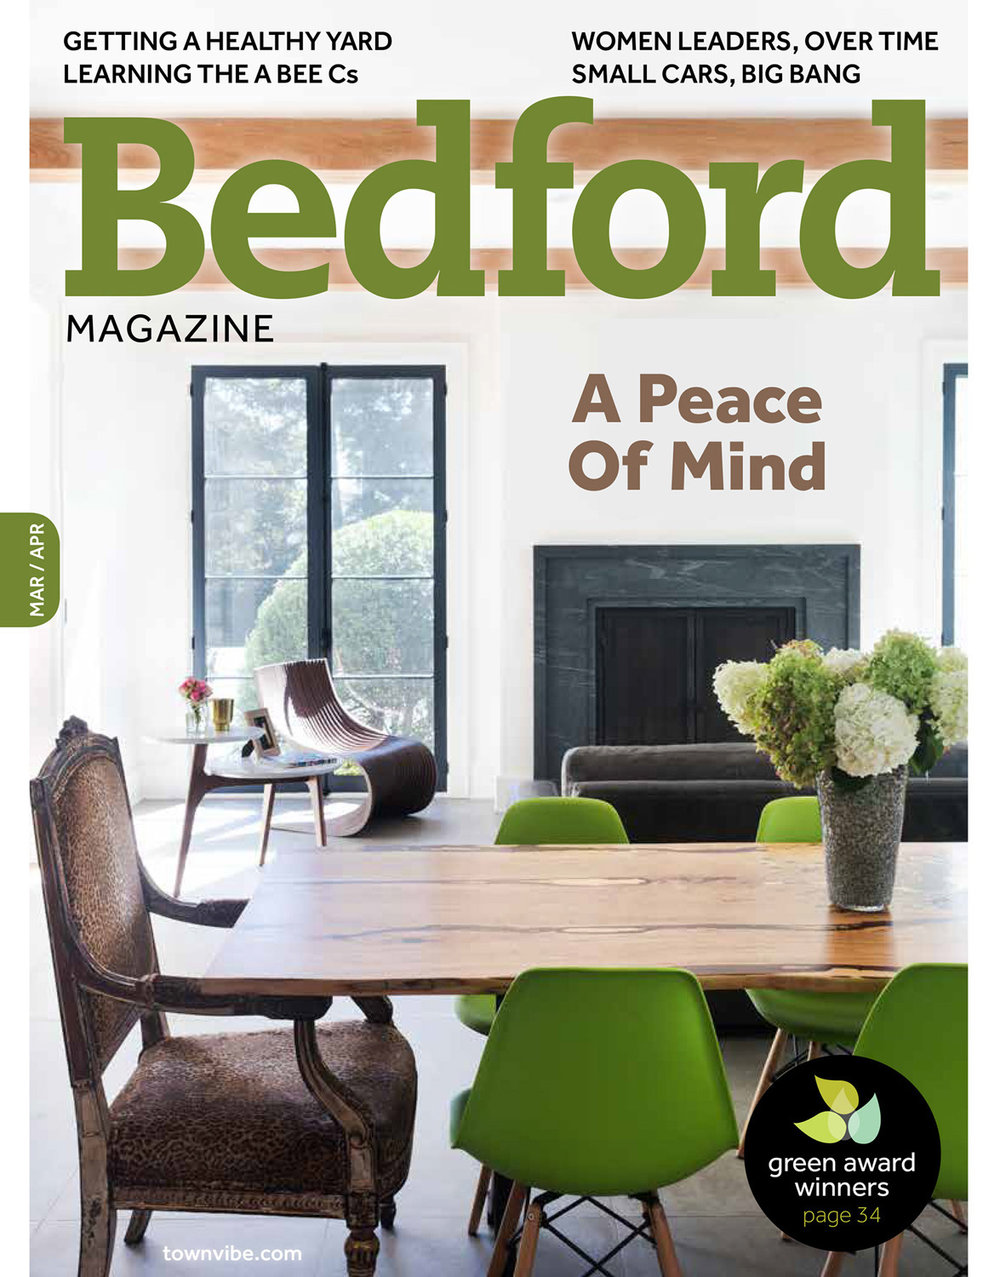 Bedford Magazine March/April 2018